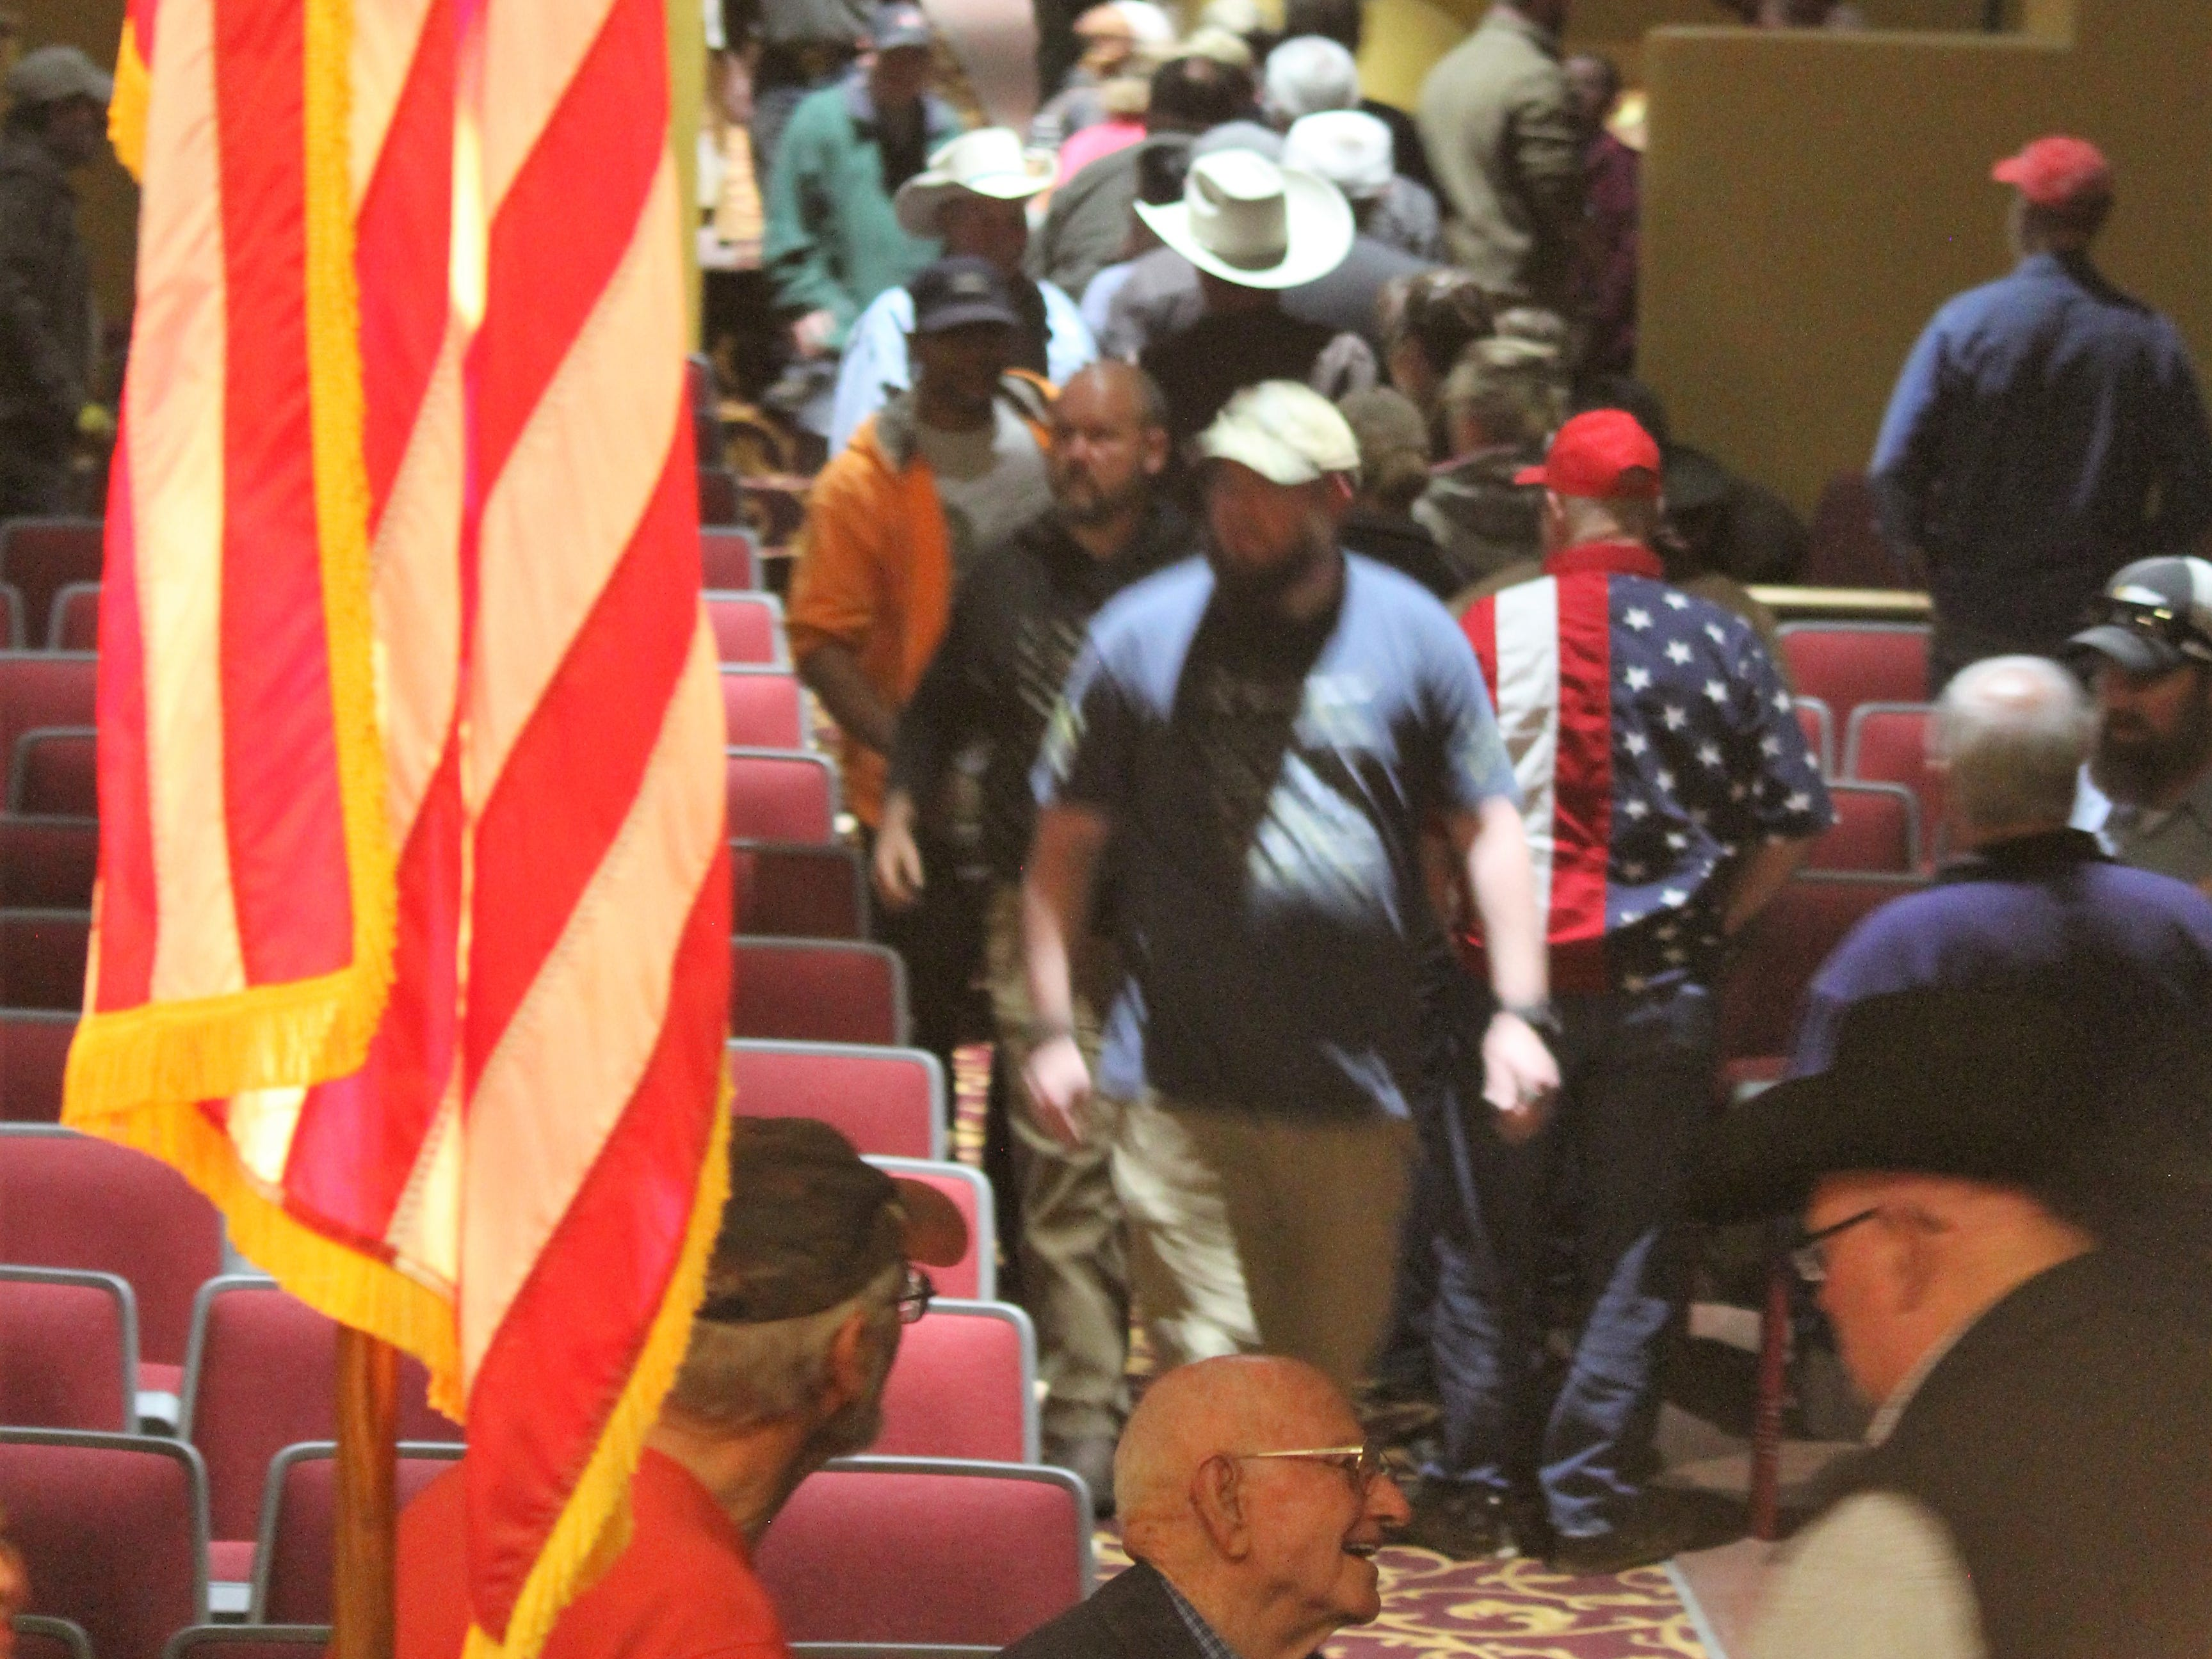 The near-capacity crowd leaves the Flickinger Center for the Performing Arts Monday night. The Otero County Commission held a special meeting to declare Otero County a Second Amendment Sanctuary County Monday night that had to move to a larger venue to support the crowd that came out for it.